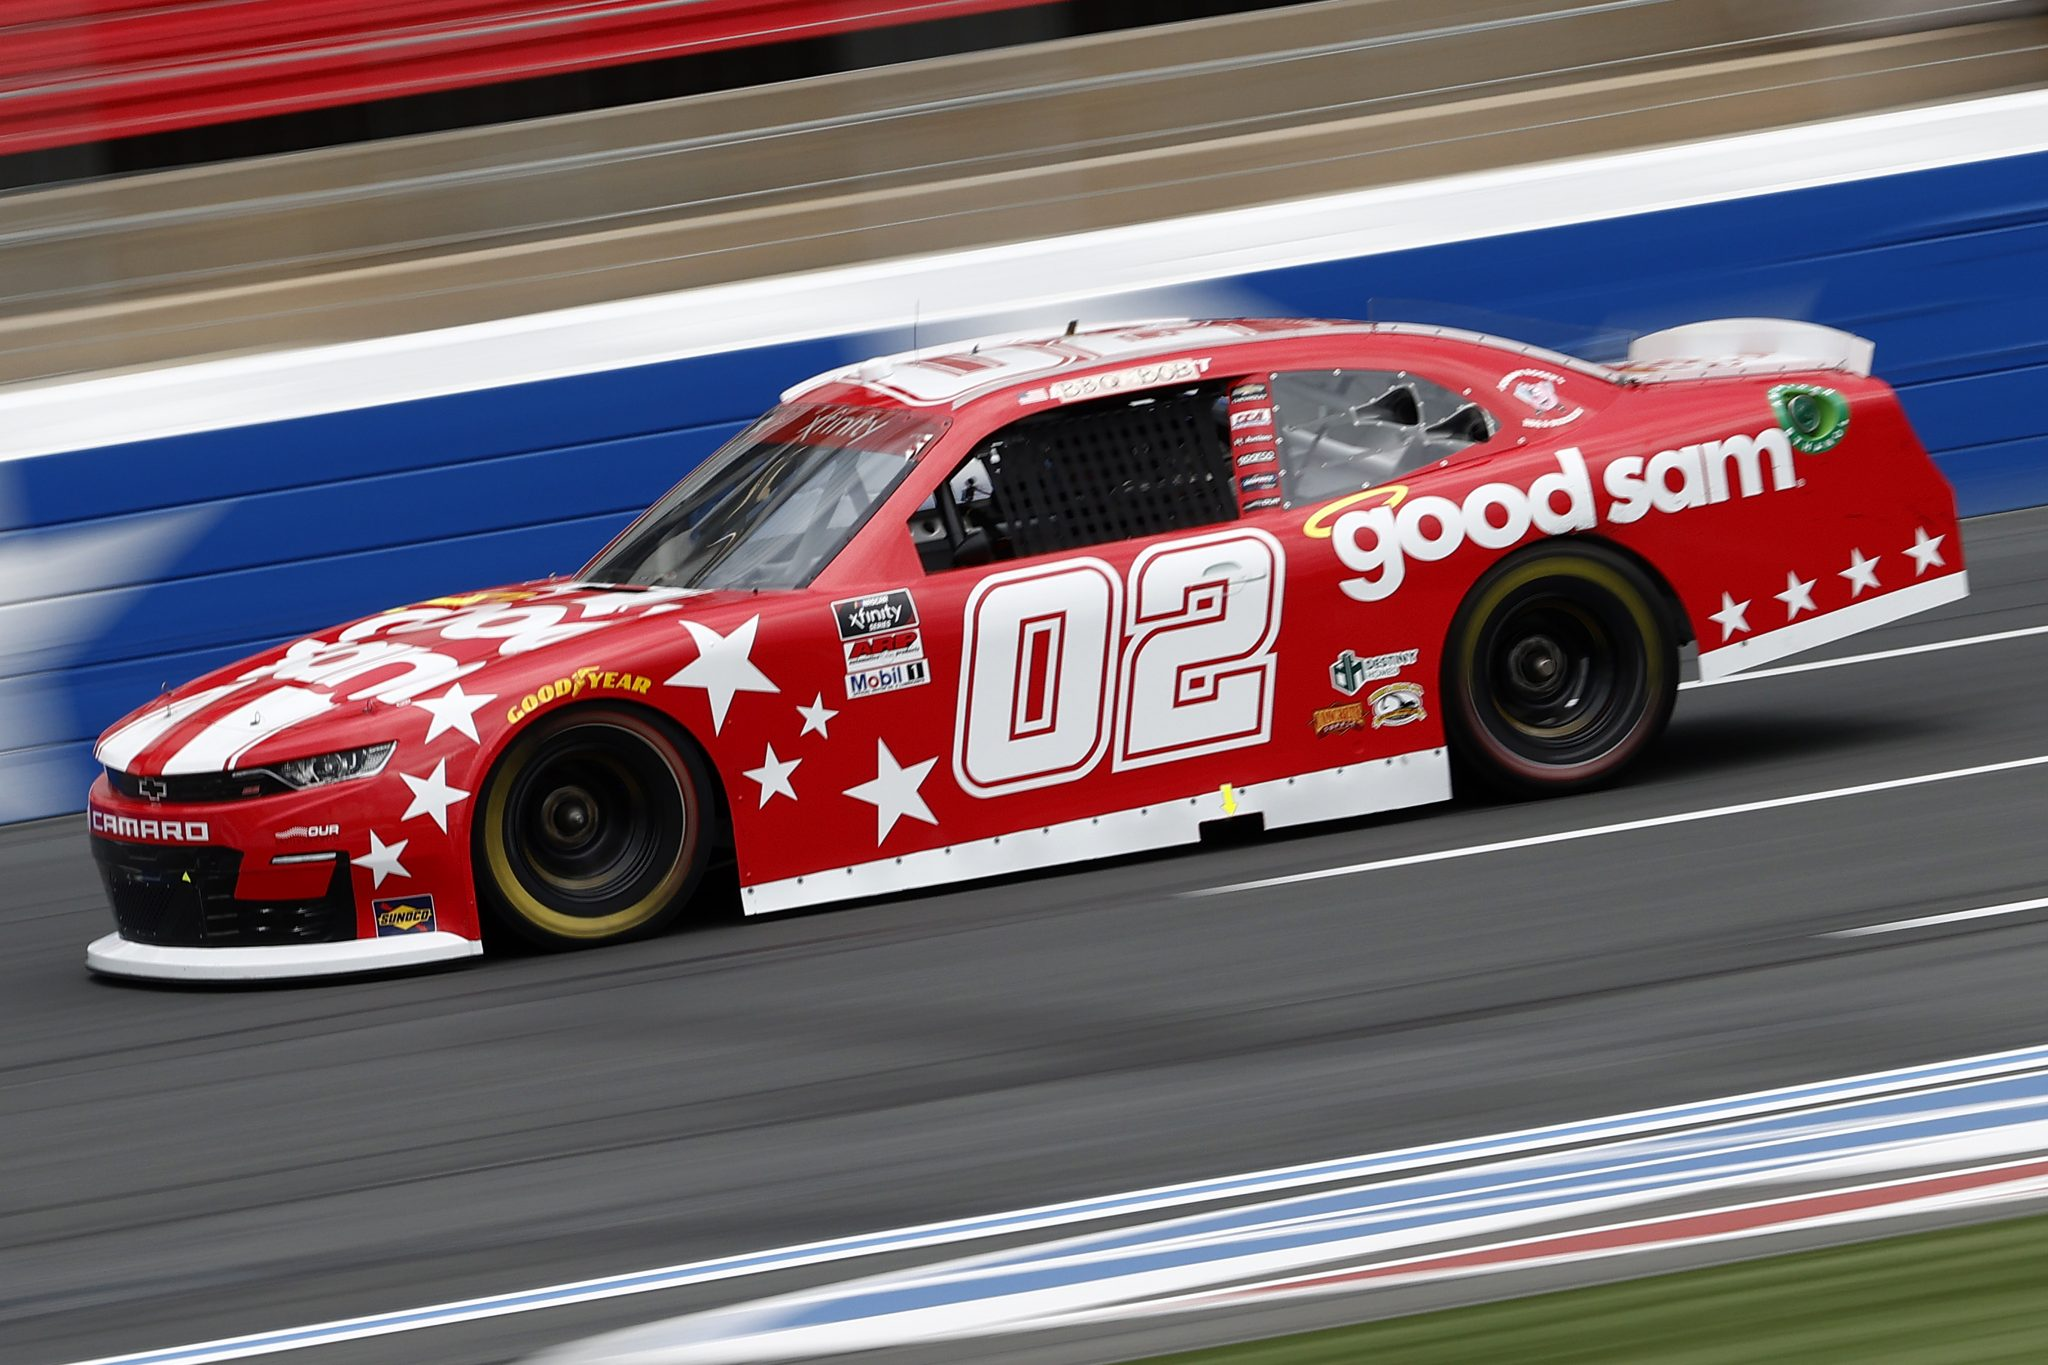 CONCORD, NORTH CAROLINA - MAY 28: Brett Moffitt, driver of the #02 Our Motorsports Chevrolet, drives during practice for the NASCAR Xfinity Series Alsco Uniforms 300 at Charlotte Motor Speedway on May 28, 2021 in Concord, North Carolina. (Photo by Maddie Meyer/Getty Images) | Getty Images